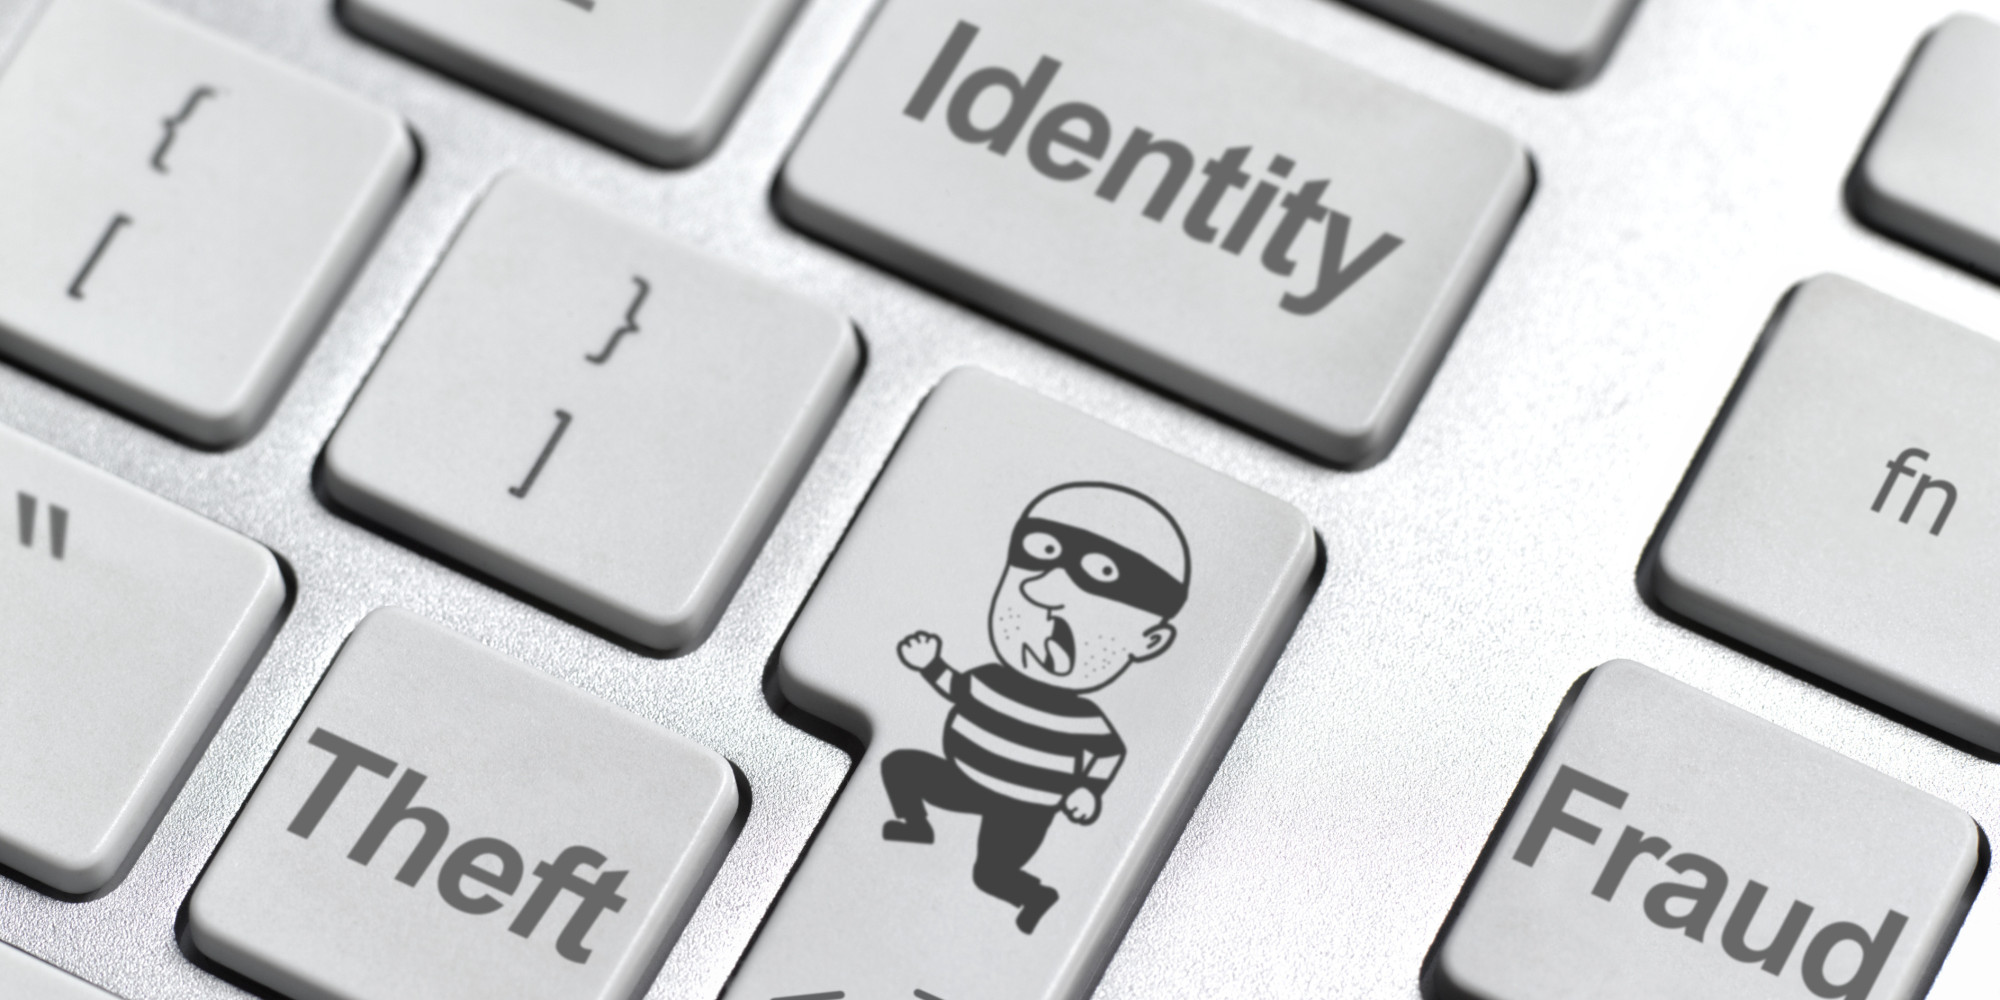 identity theft and facebook The irs combats tax-related identity theft with an aggressive strategy of prevention, detection and victim assistance remember: we don't initiate taxpayer contact by email, text or any social media tools to request personal or financial information.